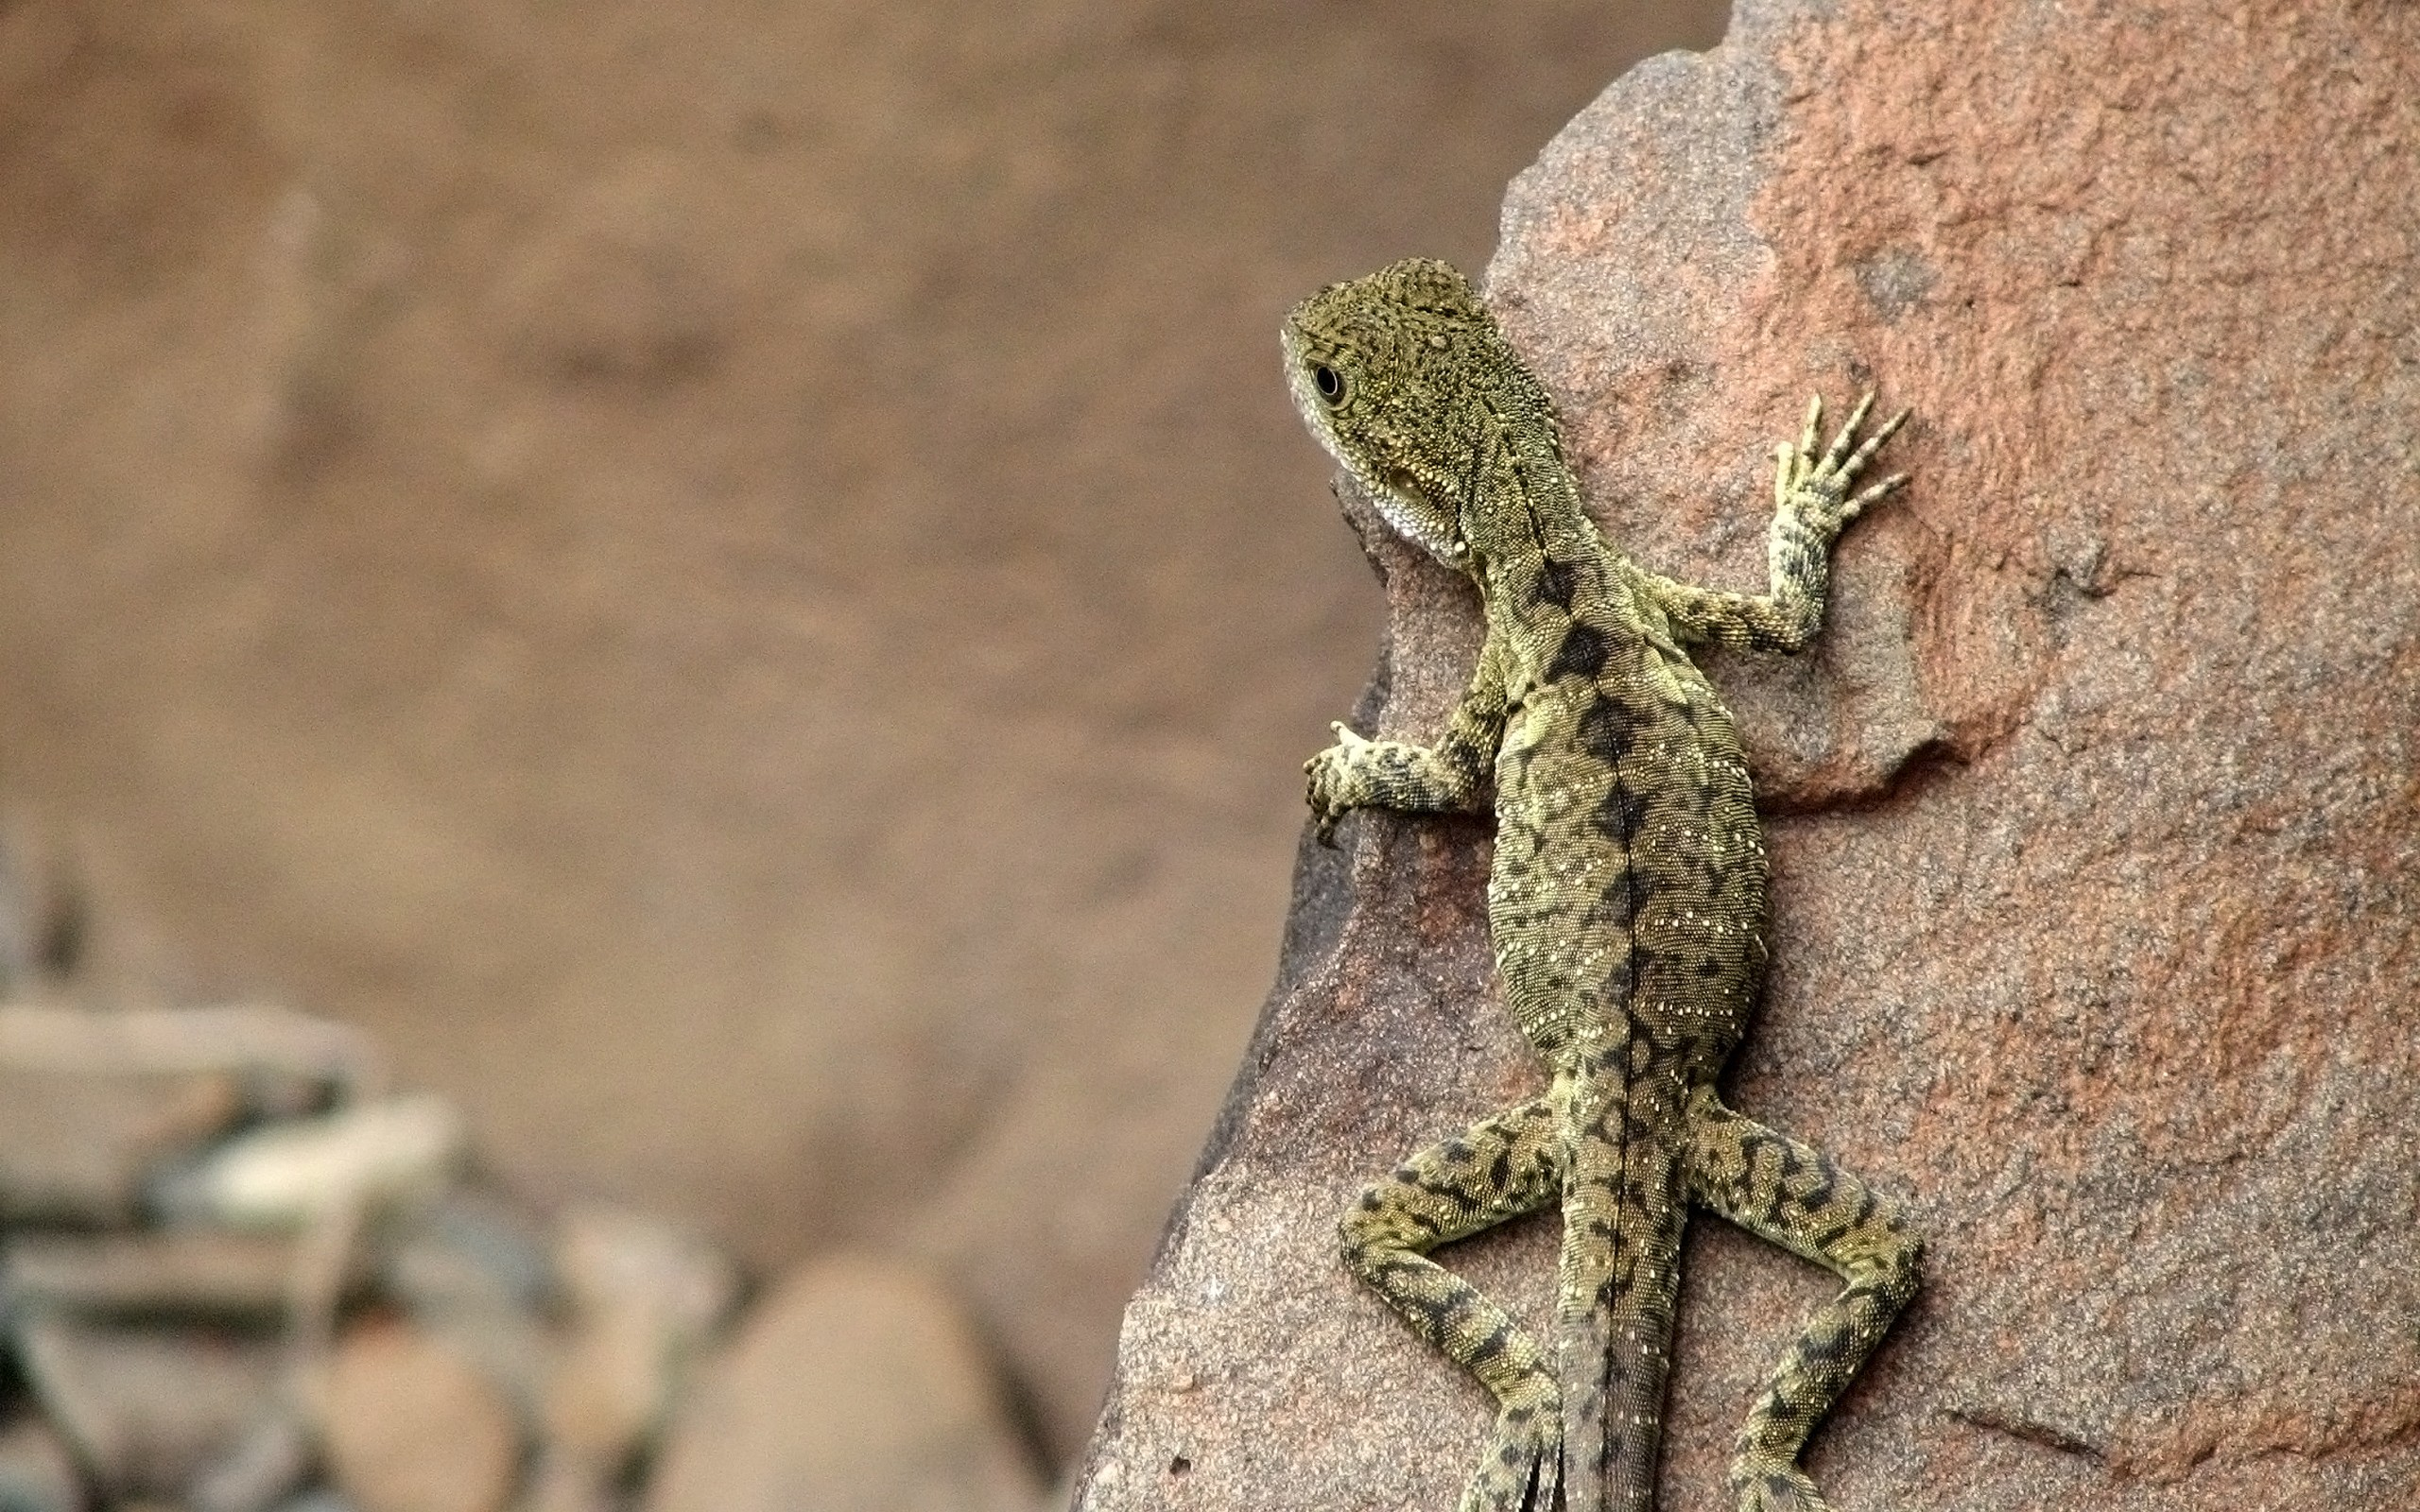 Animals rocks lizards Reptiles HD Wallpaper